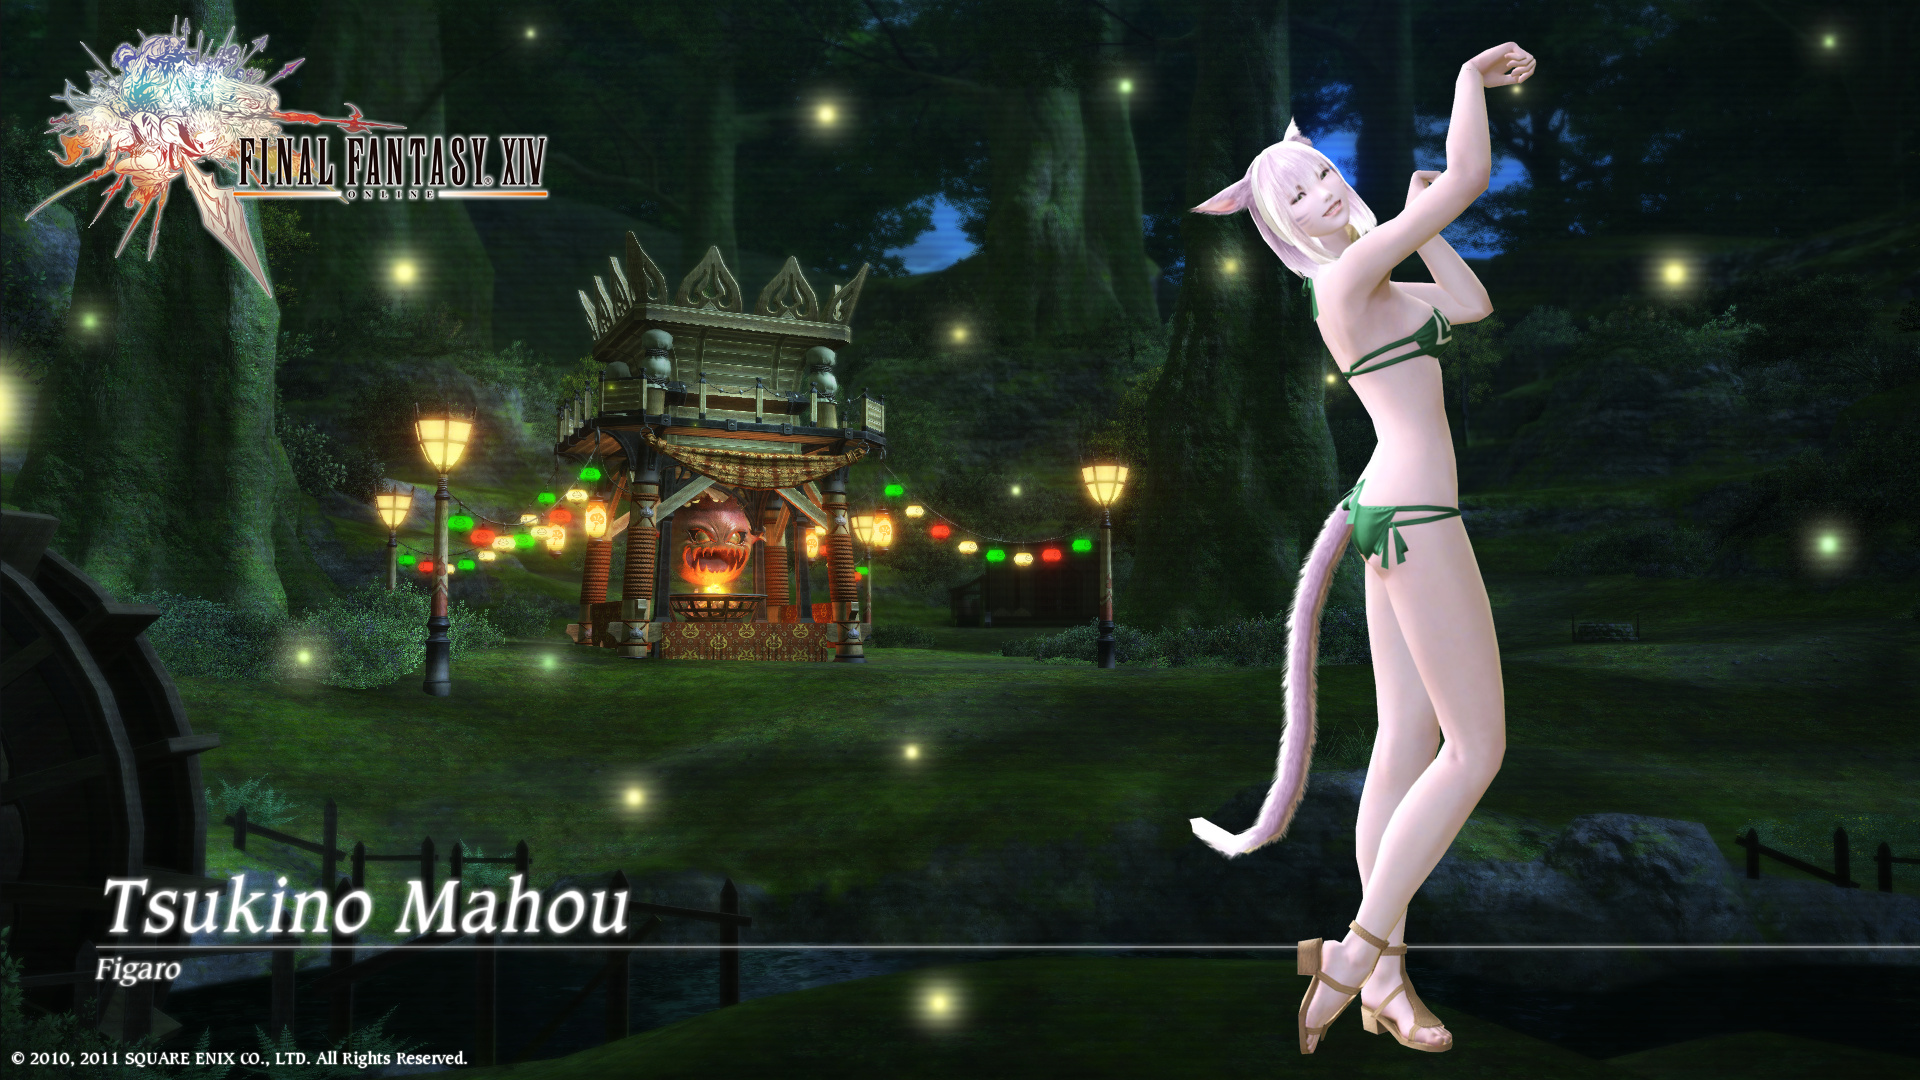 Image ffxiv miqote swimsuit wallpaperg final fantasy wiki ffxiv miqote swimsuit wallpaperg voltagebd Image collections